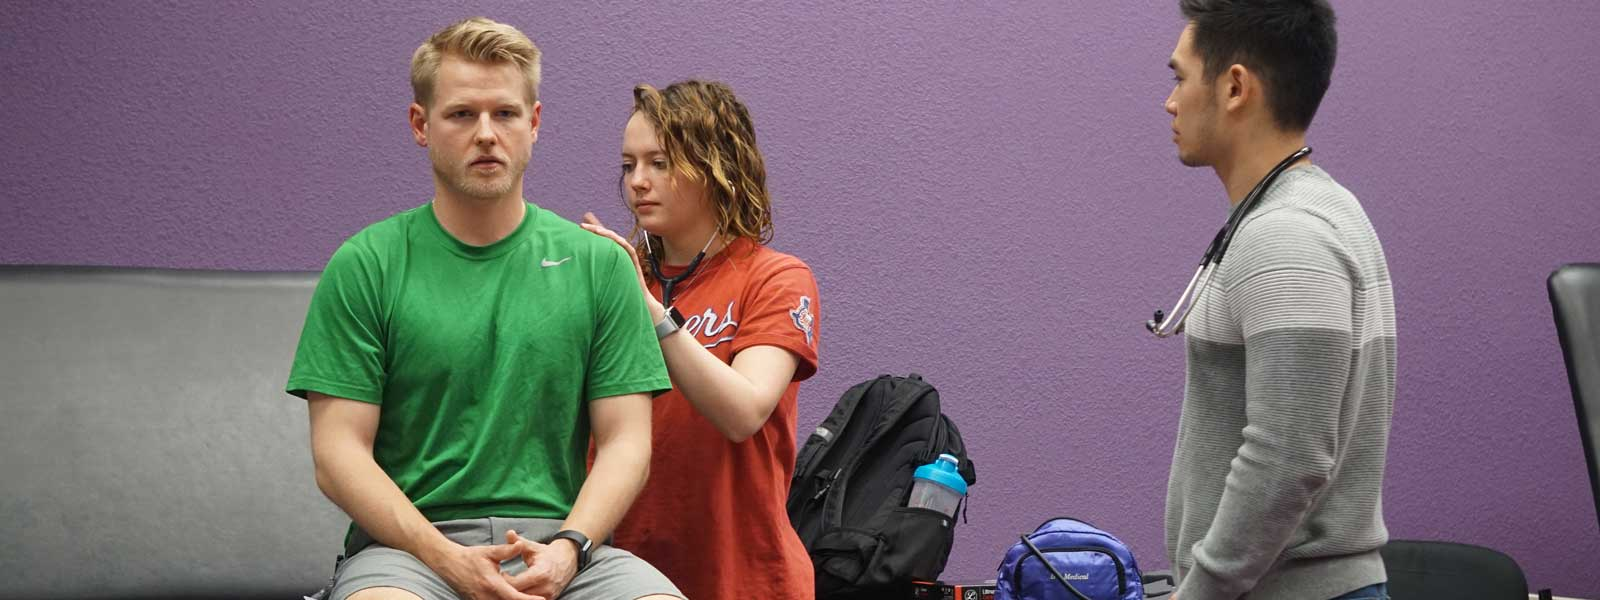 student observes instructor demonstrating physical therapy exercise with patient laying on table